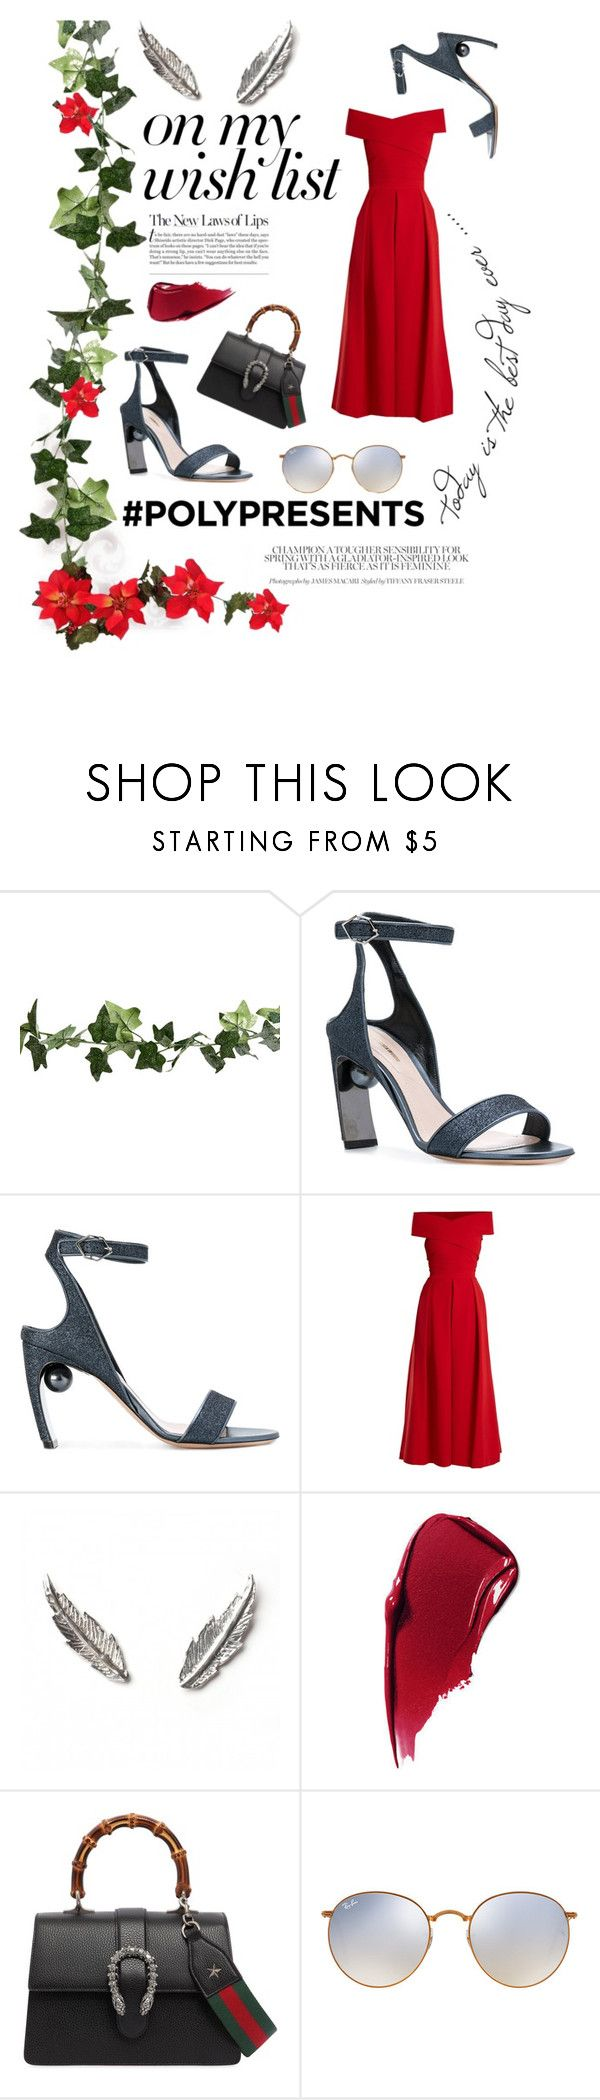 """""""#PolyPresents: Wish List"""" by faustipepa ❤ liked on Polyvore featuring Nicholas Kirkwood, Preen, LeiVanKash, Estée Lauder, Gucci, Ray-Ban, contestentry and polyPresents"""